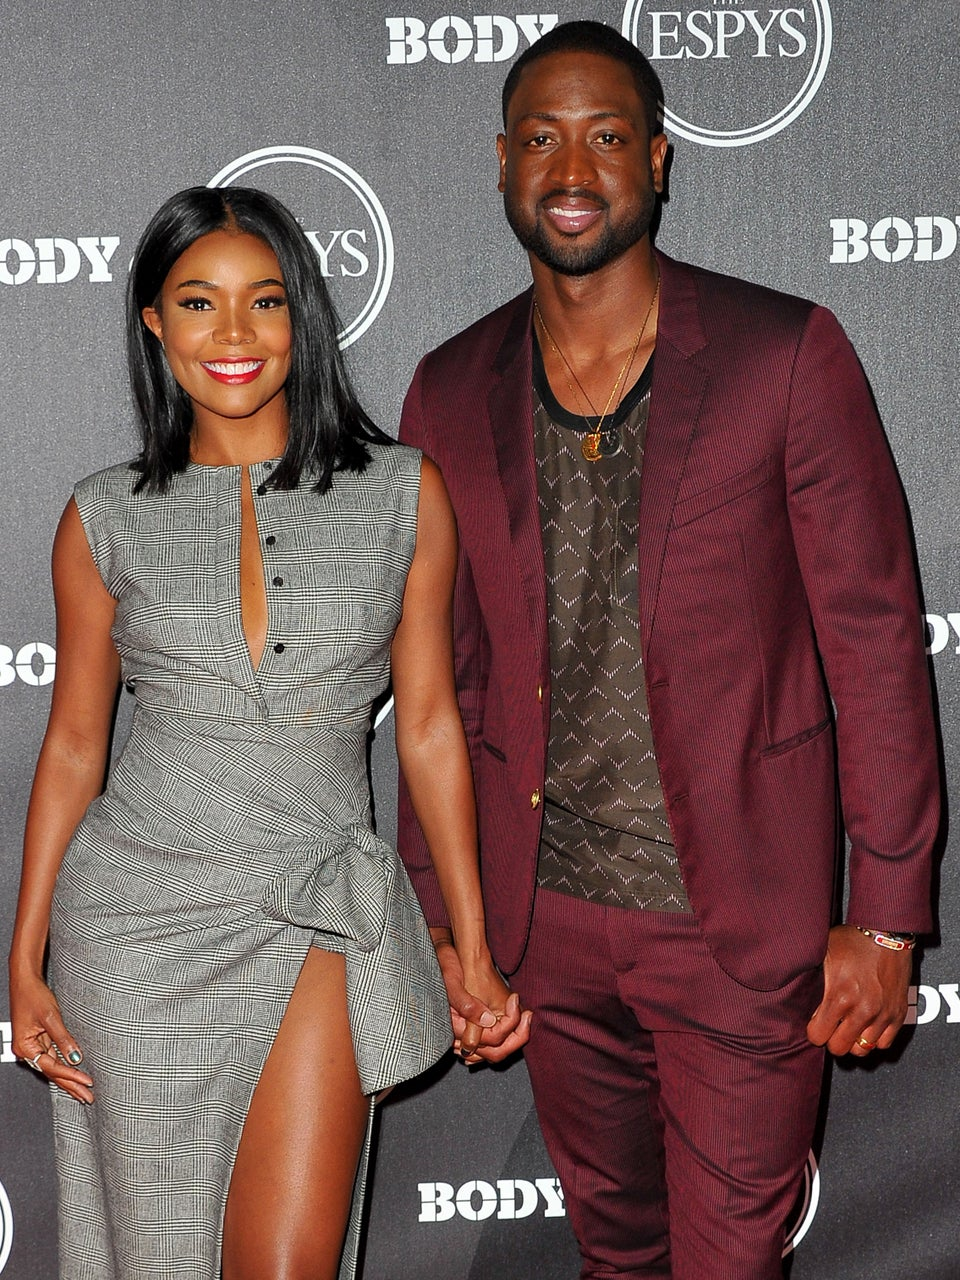 The Wades Spend Their Last Last Days In Miami With a Series of Epic Date Nights